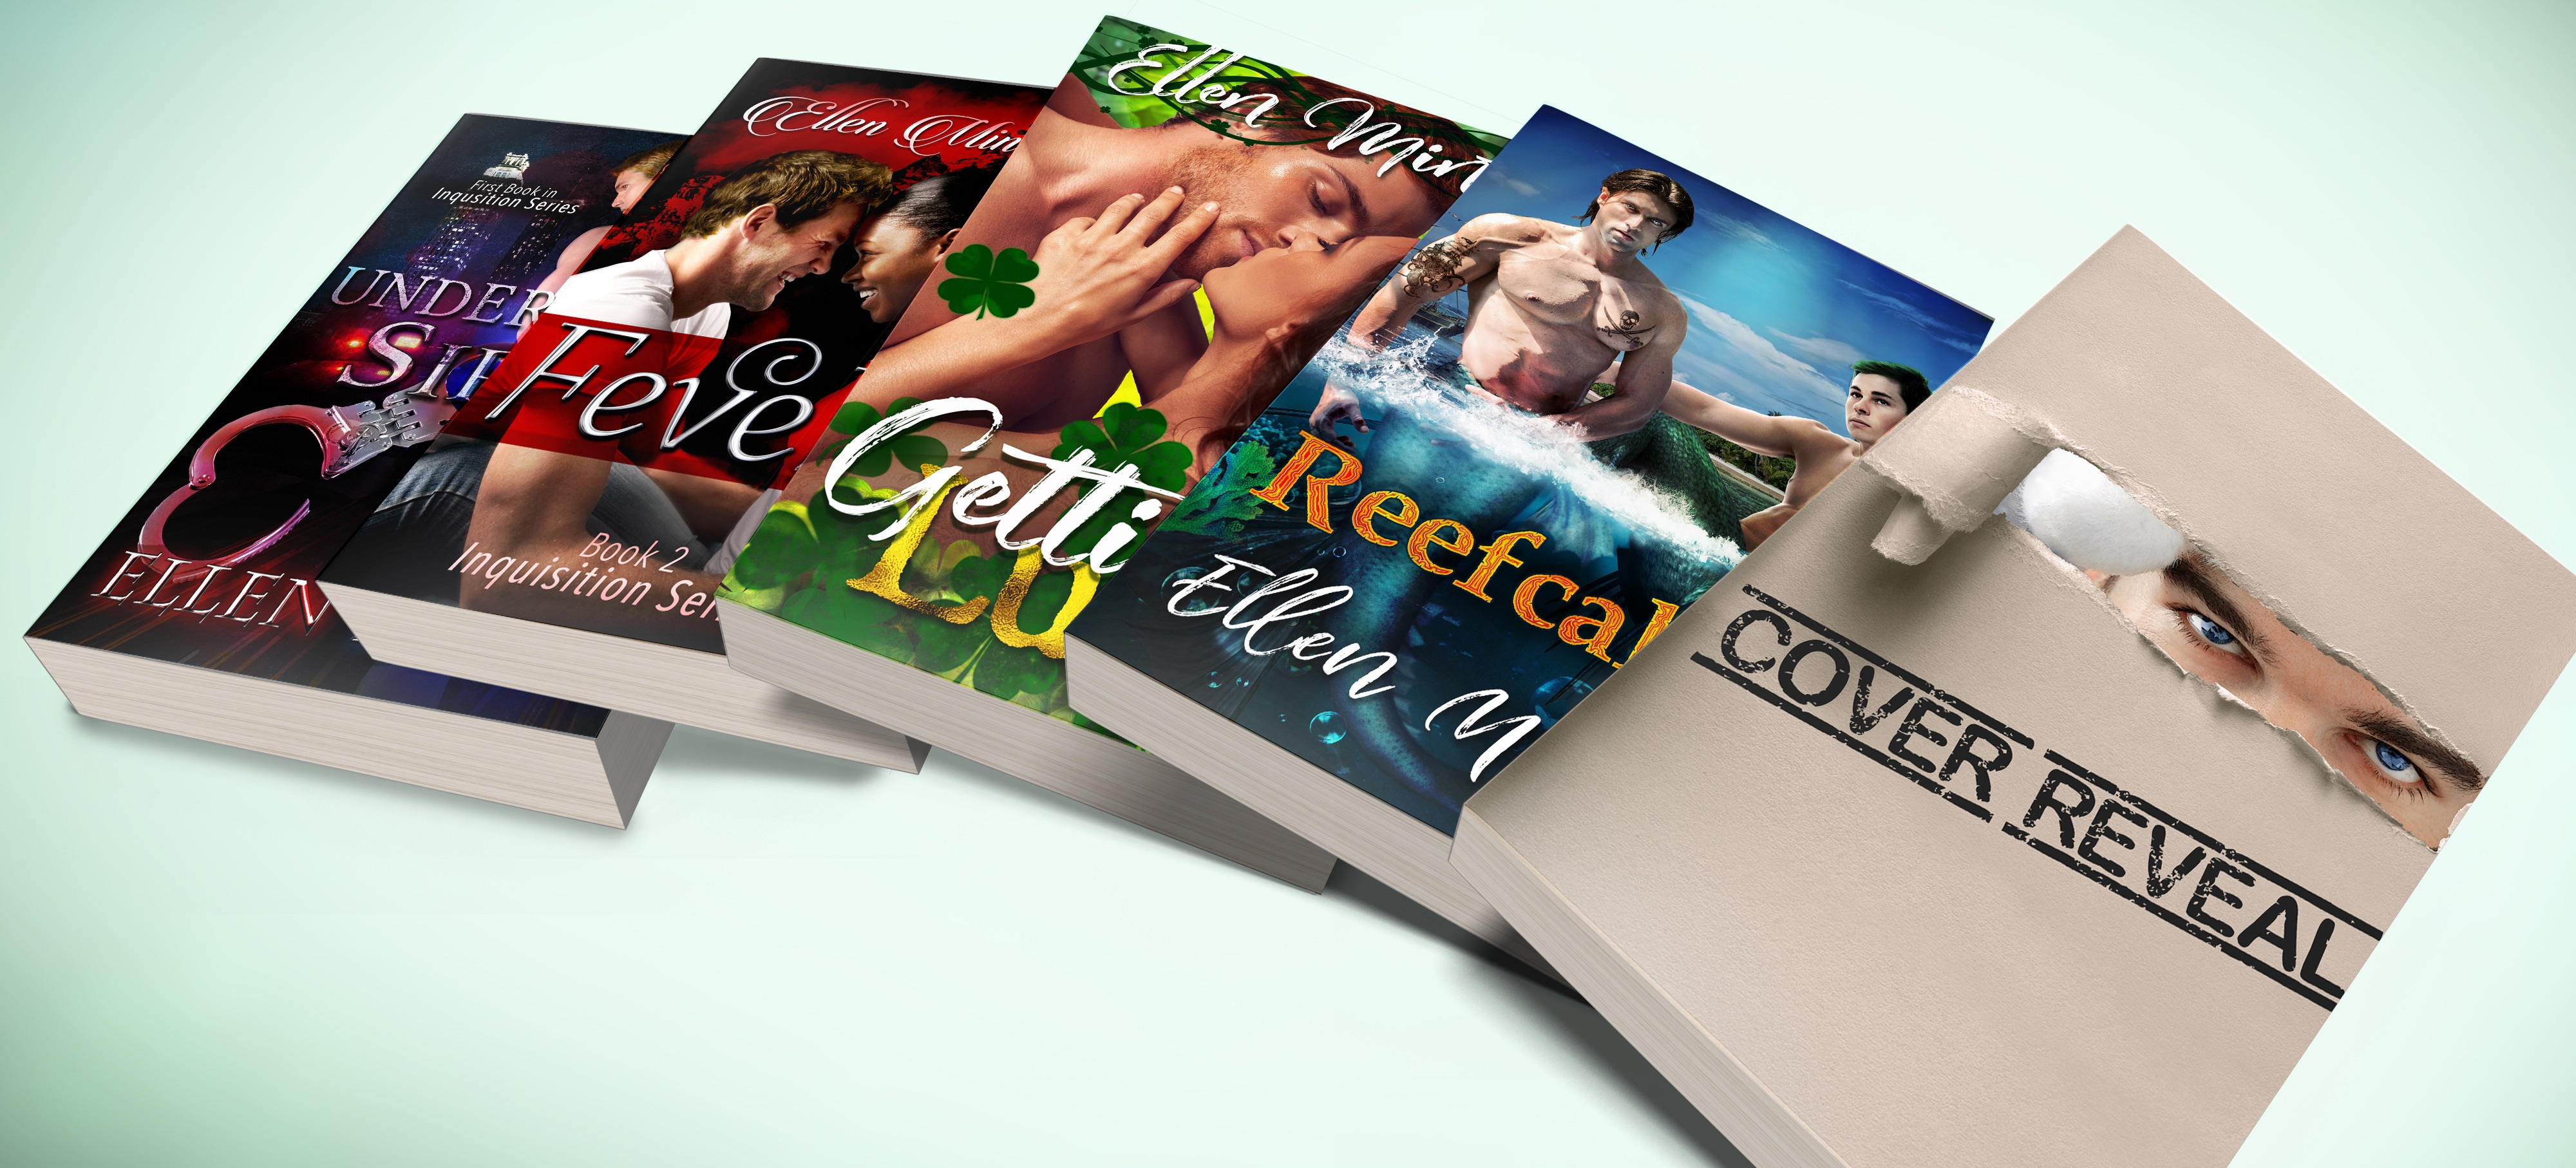 Possible books available including Undercover Siren, Fever, Gettin' Lucky, Reefcake, and one to be seen soon